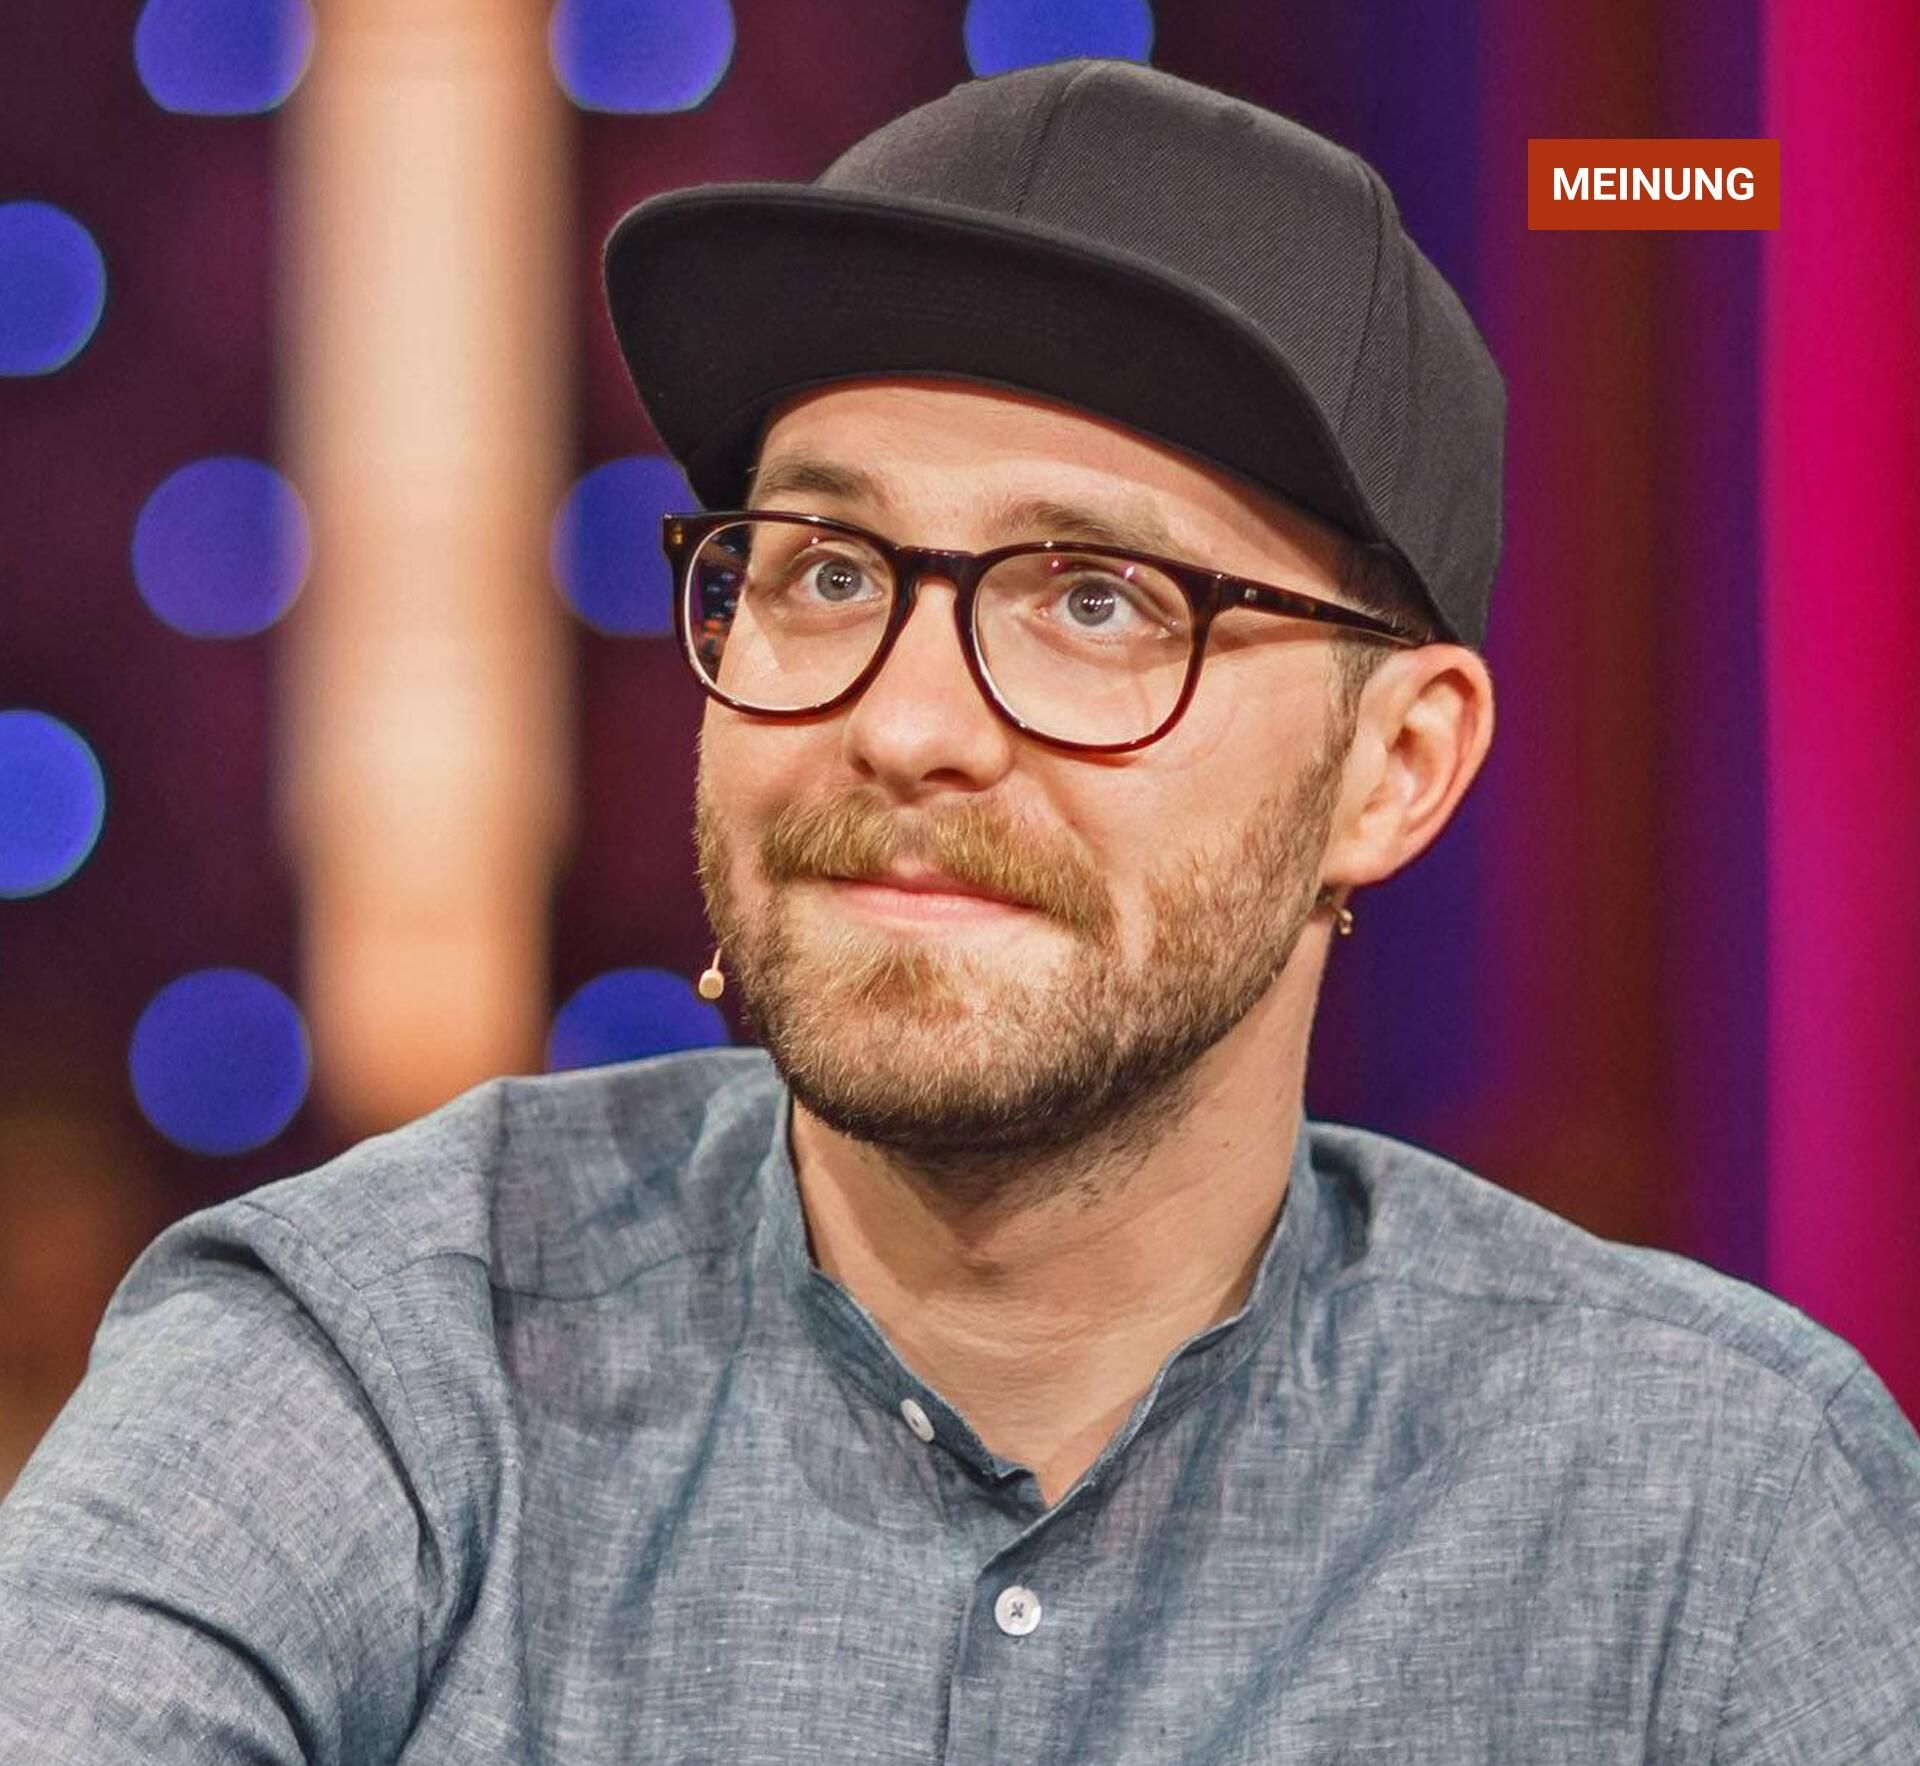 The Voice Of Germany 2018 Mark Forster Is Now Called Forrest Skirt Laughers Club Funny Jokes And Story Funny Jokes Forster Funny